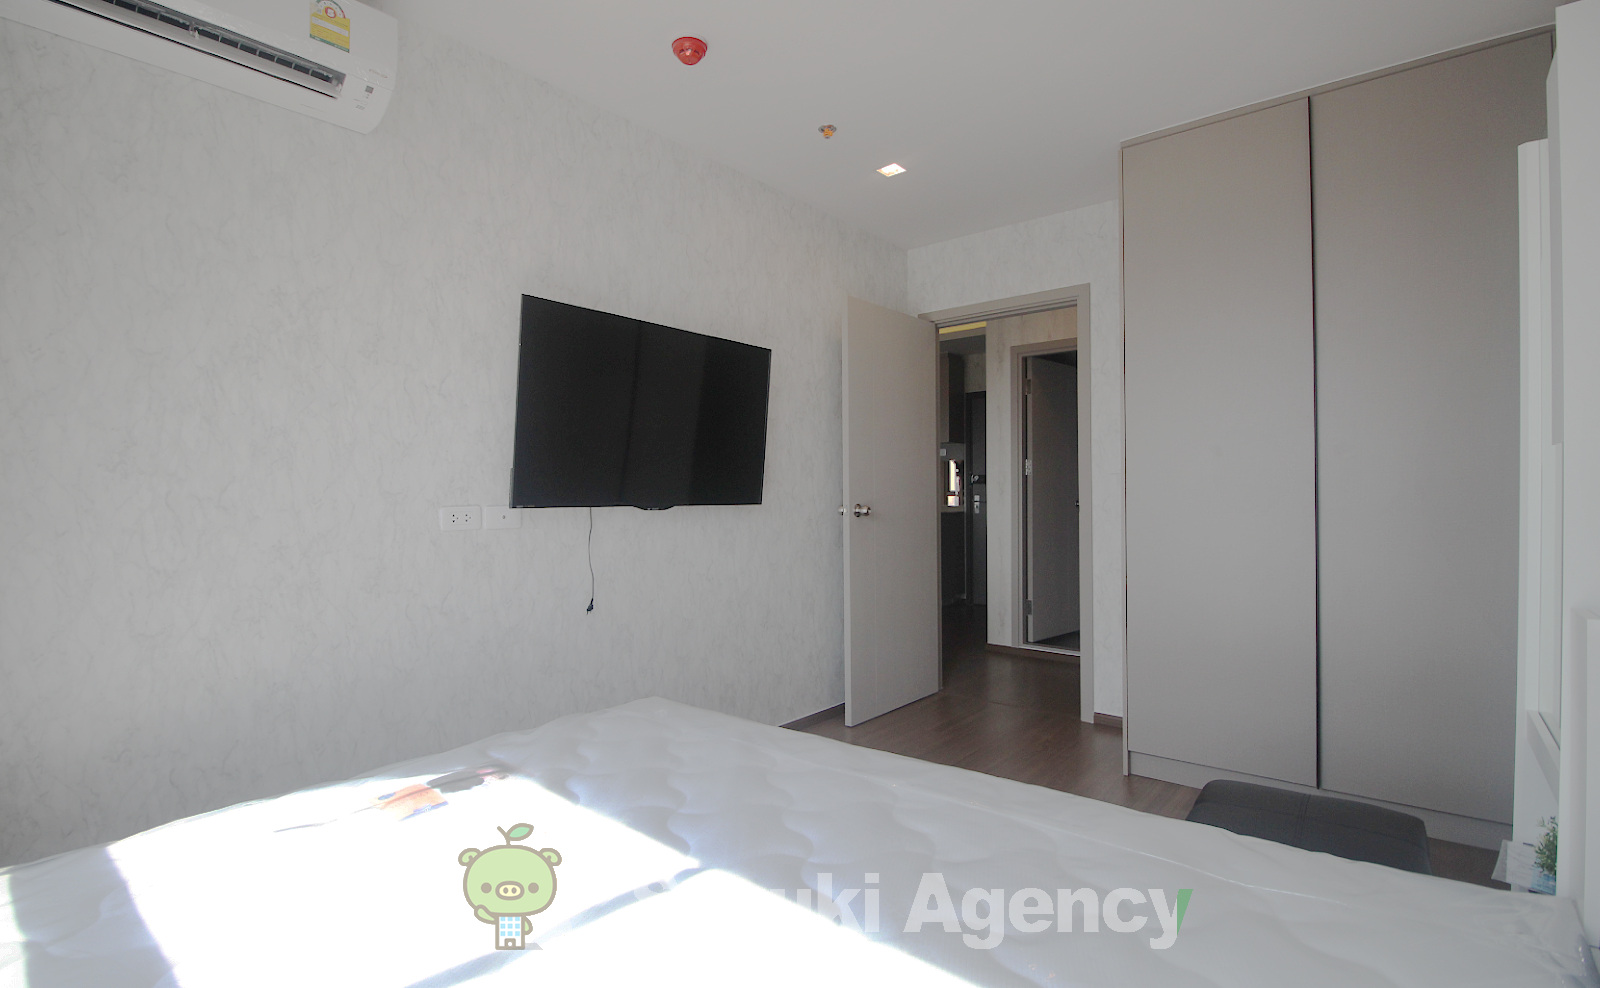 Ideo Sukhumvit 93:2Bed Room Photos No.8